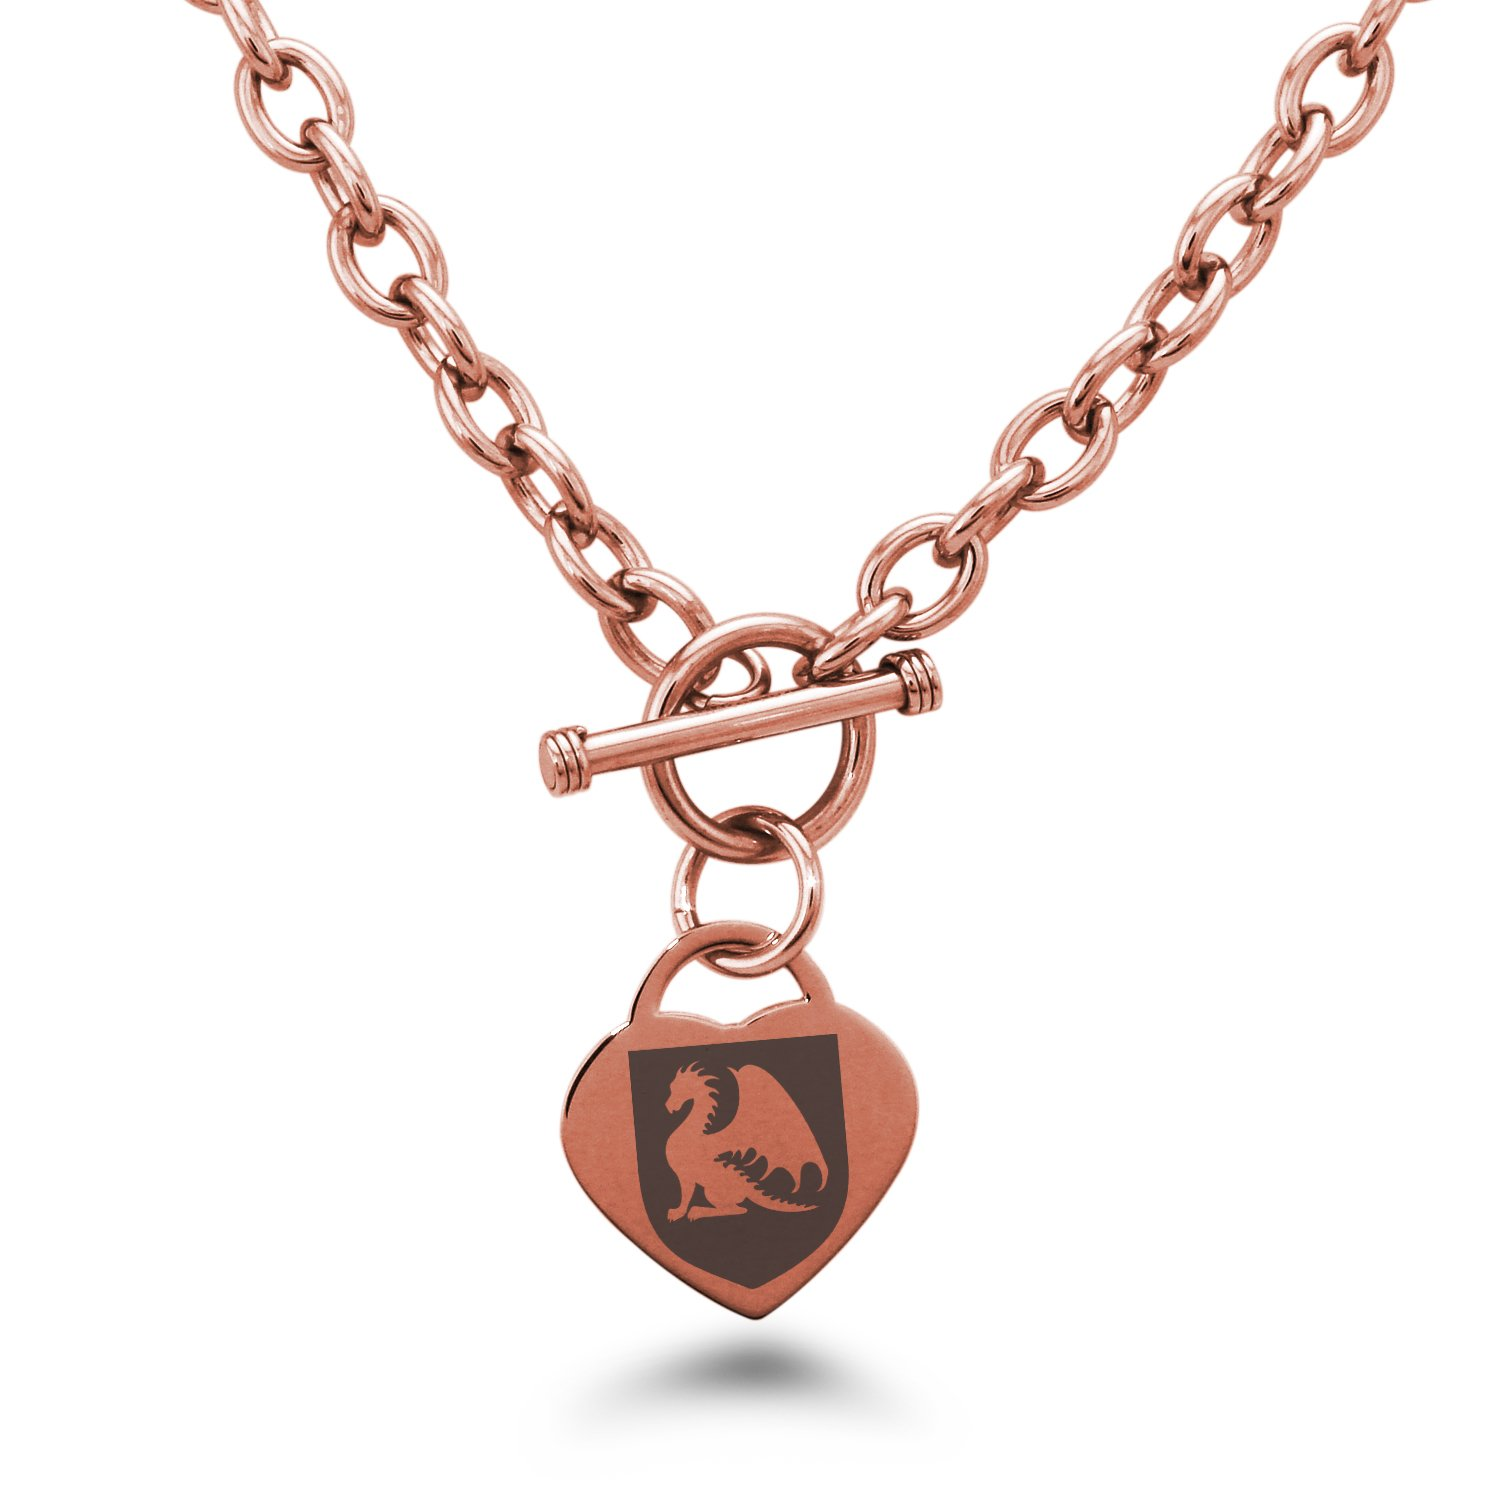 Tioneer Rose Gold Plated Stainless Steel Dragon Guardian Coat of Arms Shield Symbols Heart Charm, Necklace Only